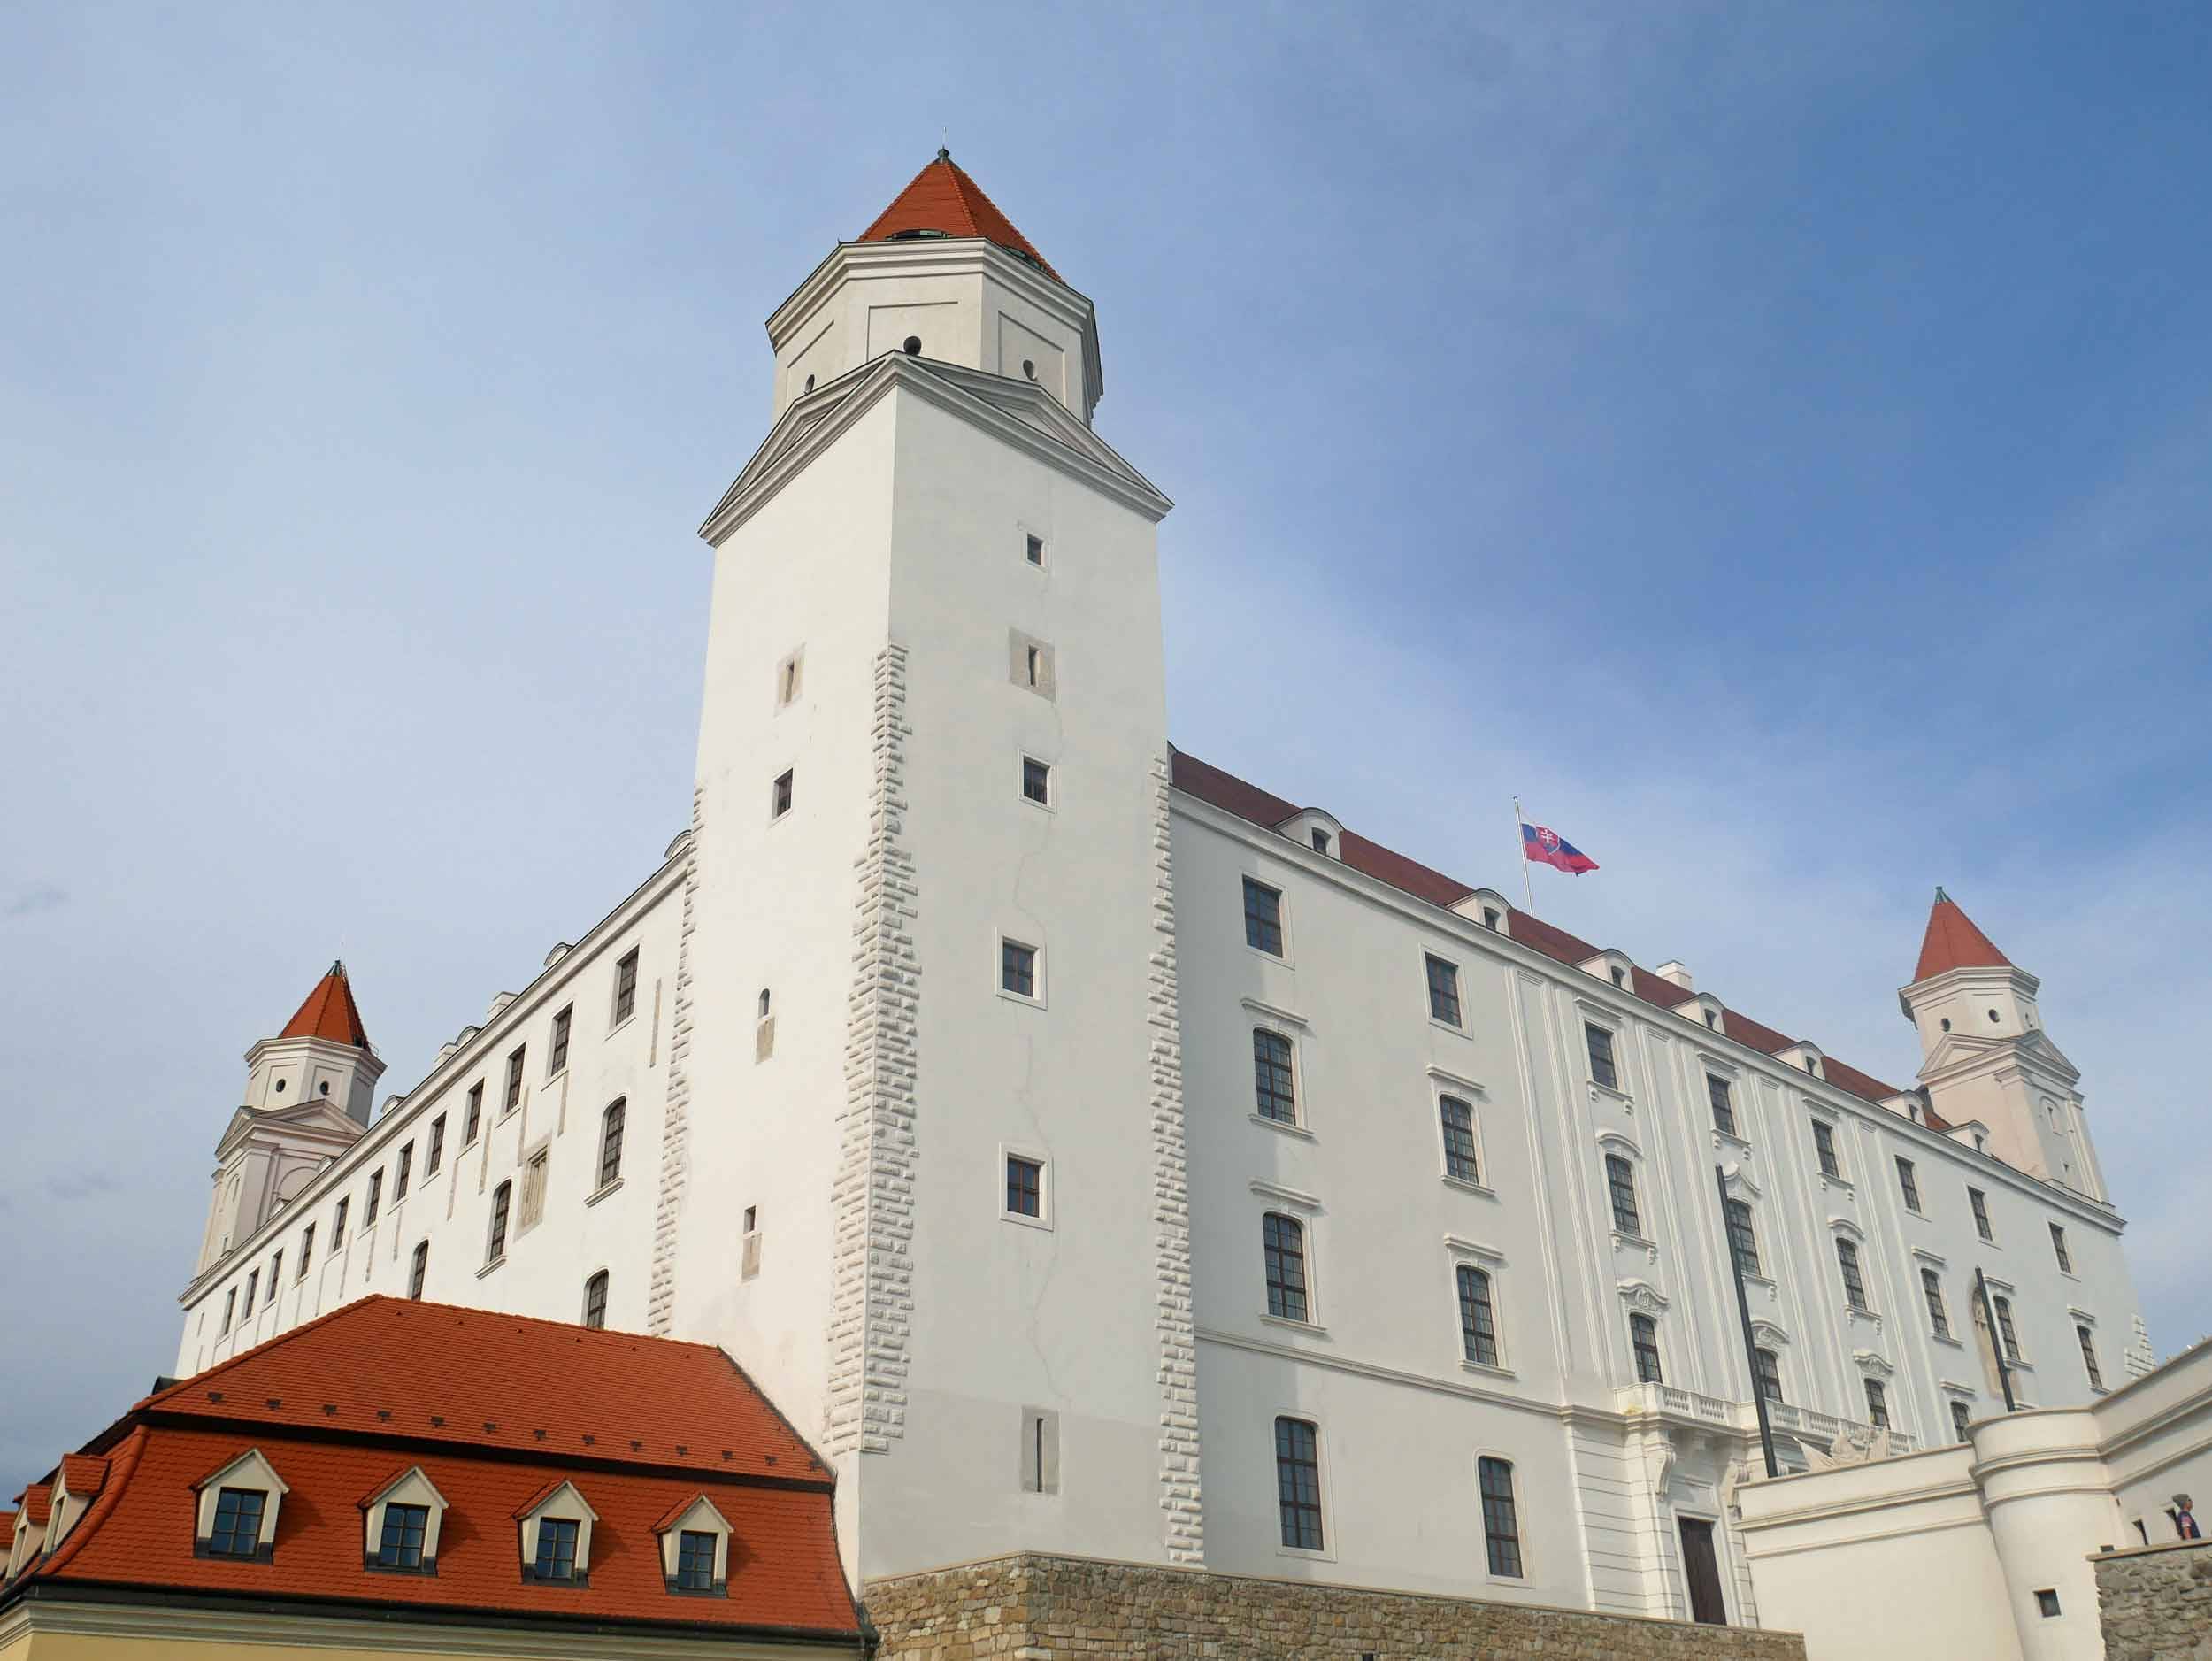 Bratislava Castle, perched atop the isolated rocky outcrop of the Little Carpathians, has lorded over the city for centuries.